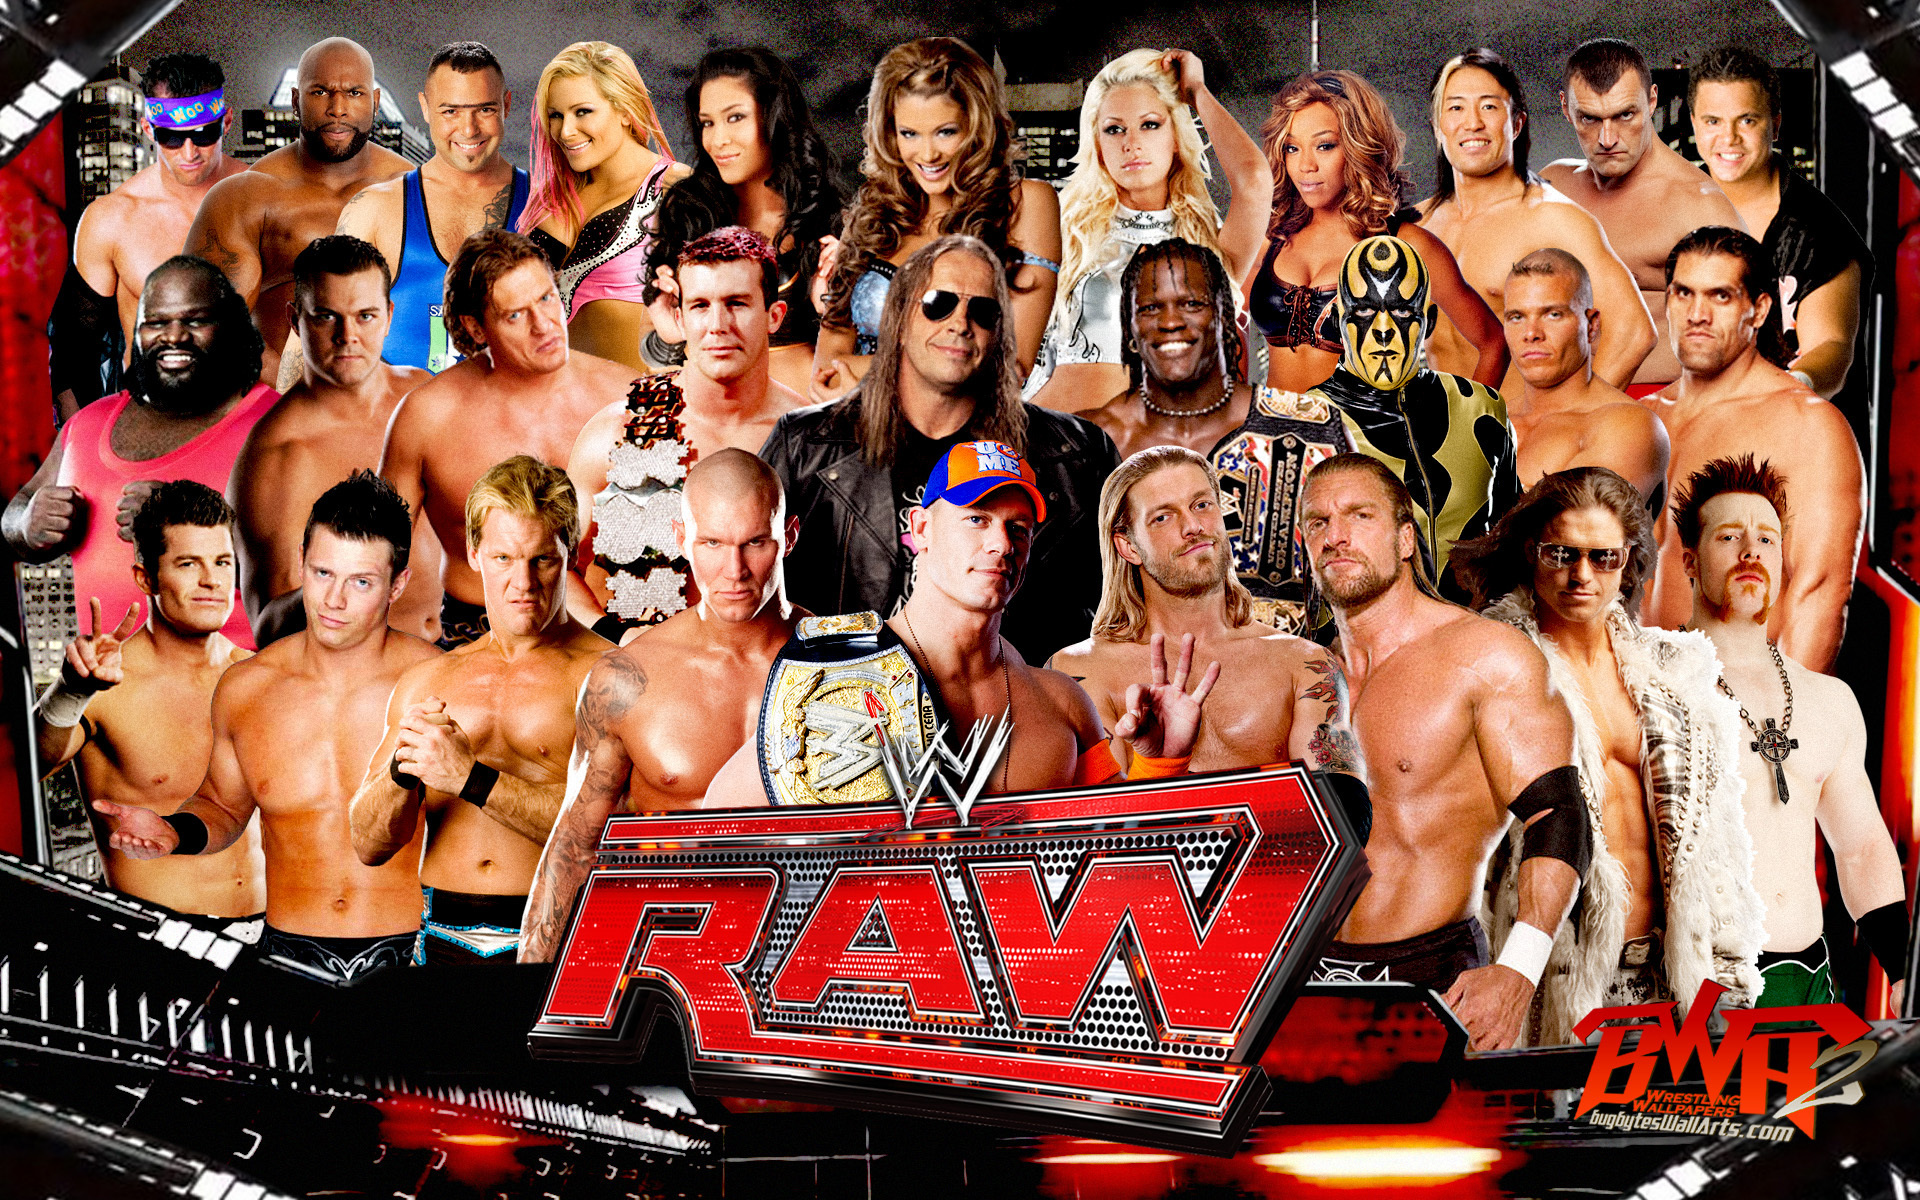 wwe-superstars-images-wwe-raw-wwe-wallpaper-wp4210878